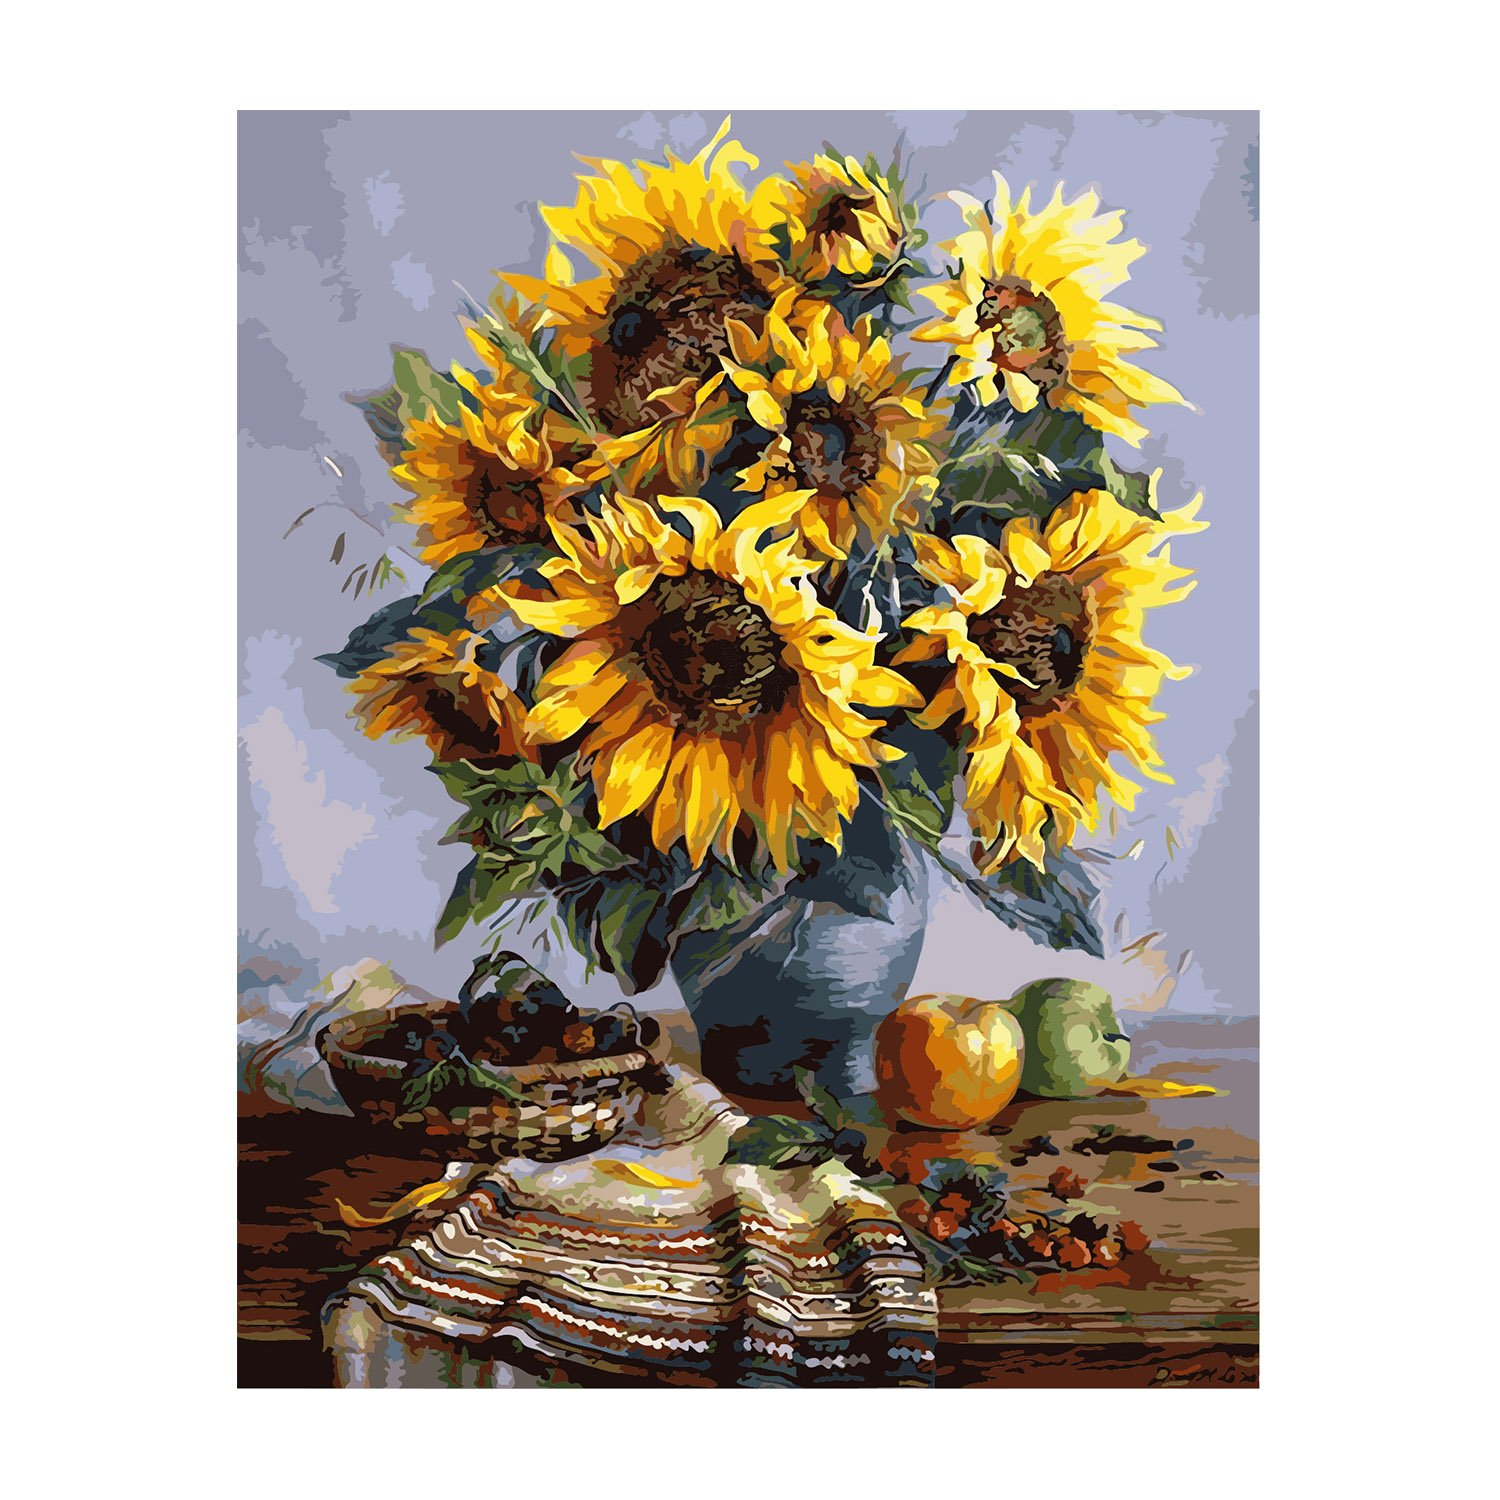 NeoConcept DIY Oil Painting, Adults' Paint by Number Kits, Acrylic Painting - Sunflower 16 by 20 Tuoyun